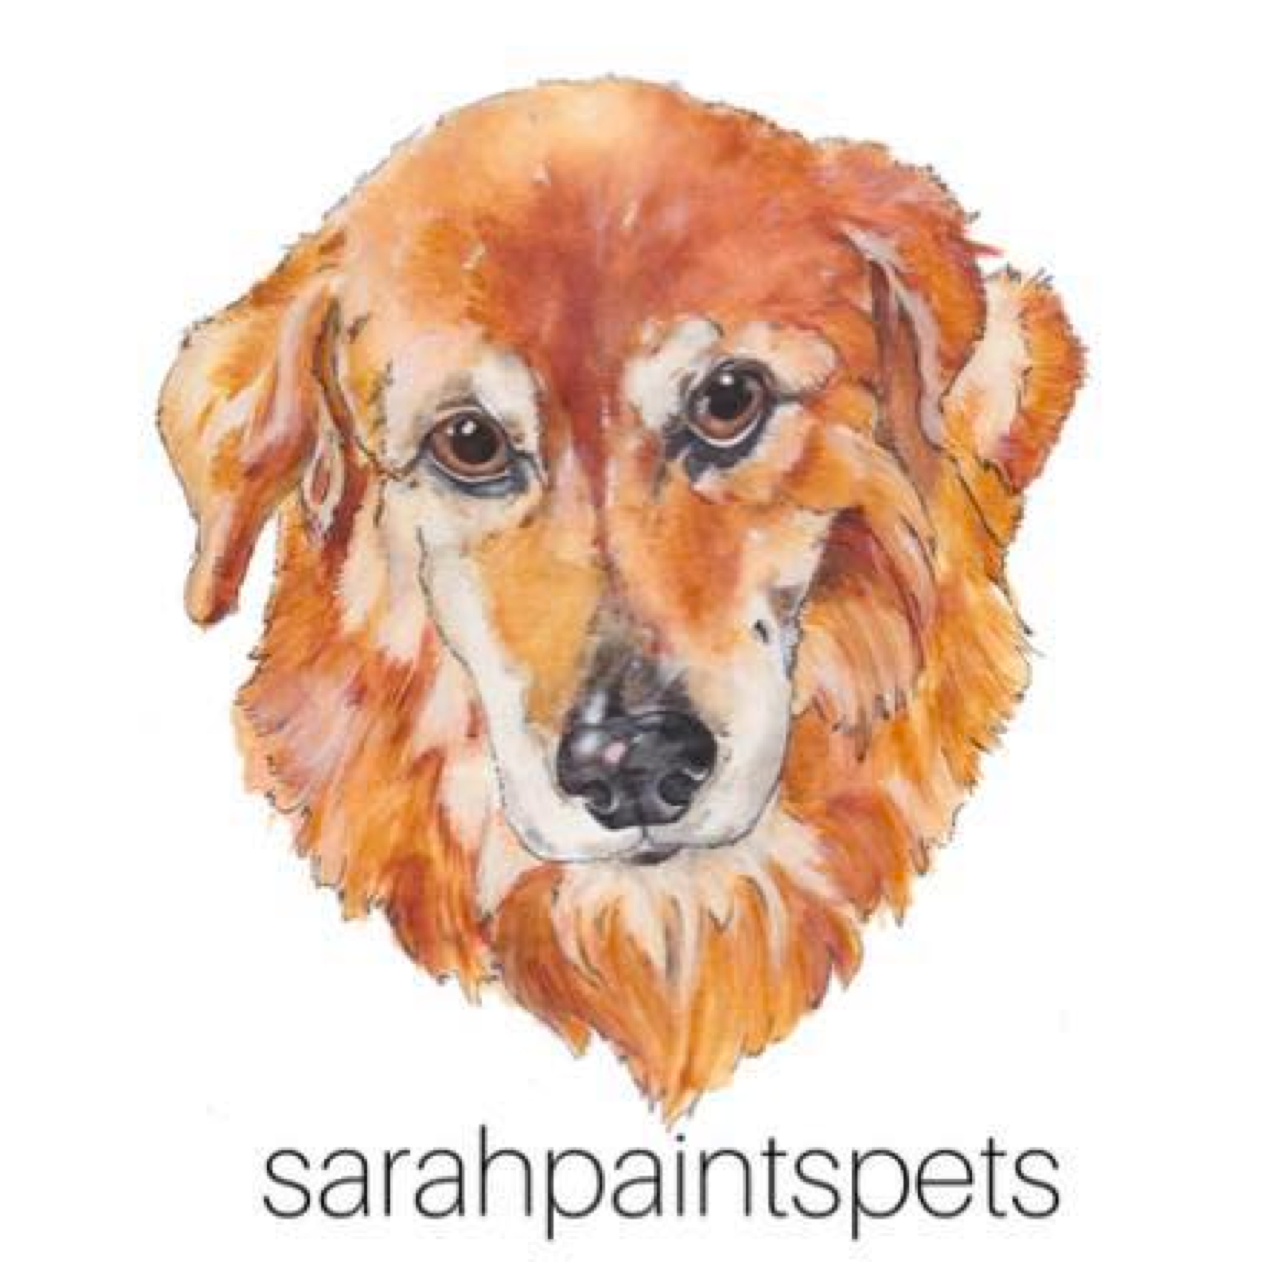 sarah-miller-started-a-business-selling-her-own-artwork-online